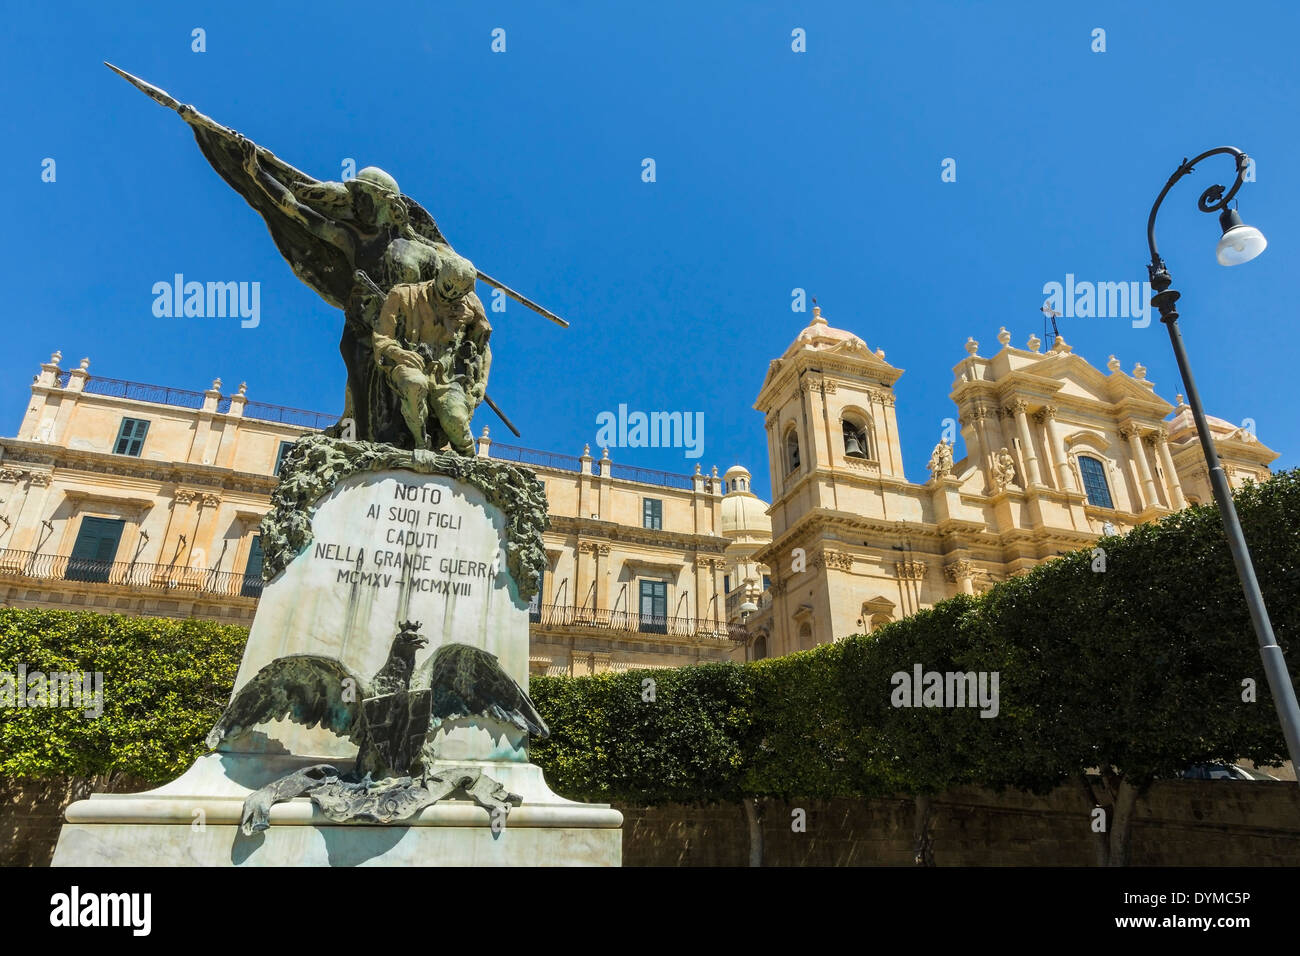 Monument to the First World War & the 17thC Cathedral, at this World Heritage Baroque architecture city; Noto, Sicily, Italy - Stock Image